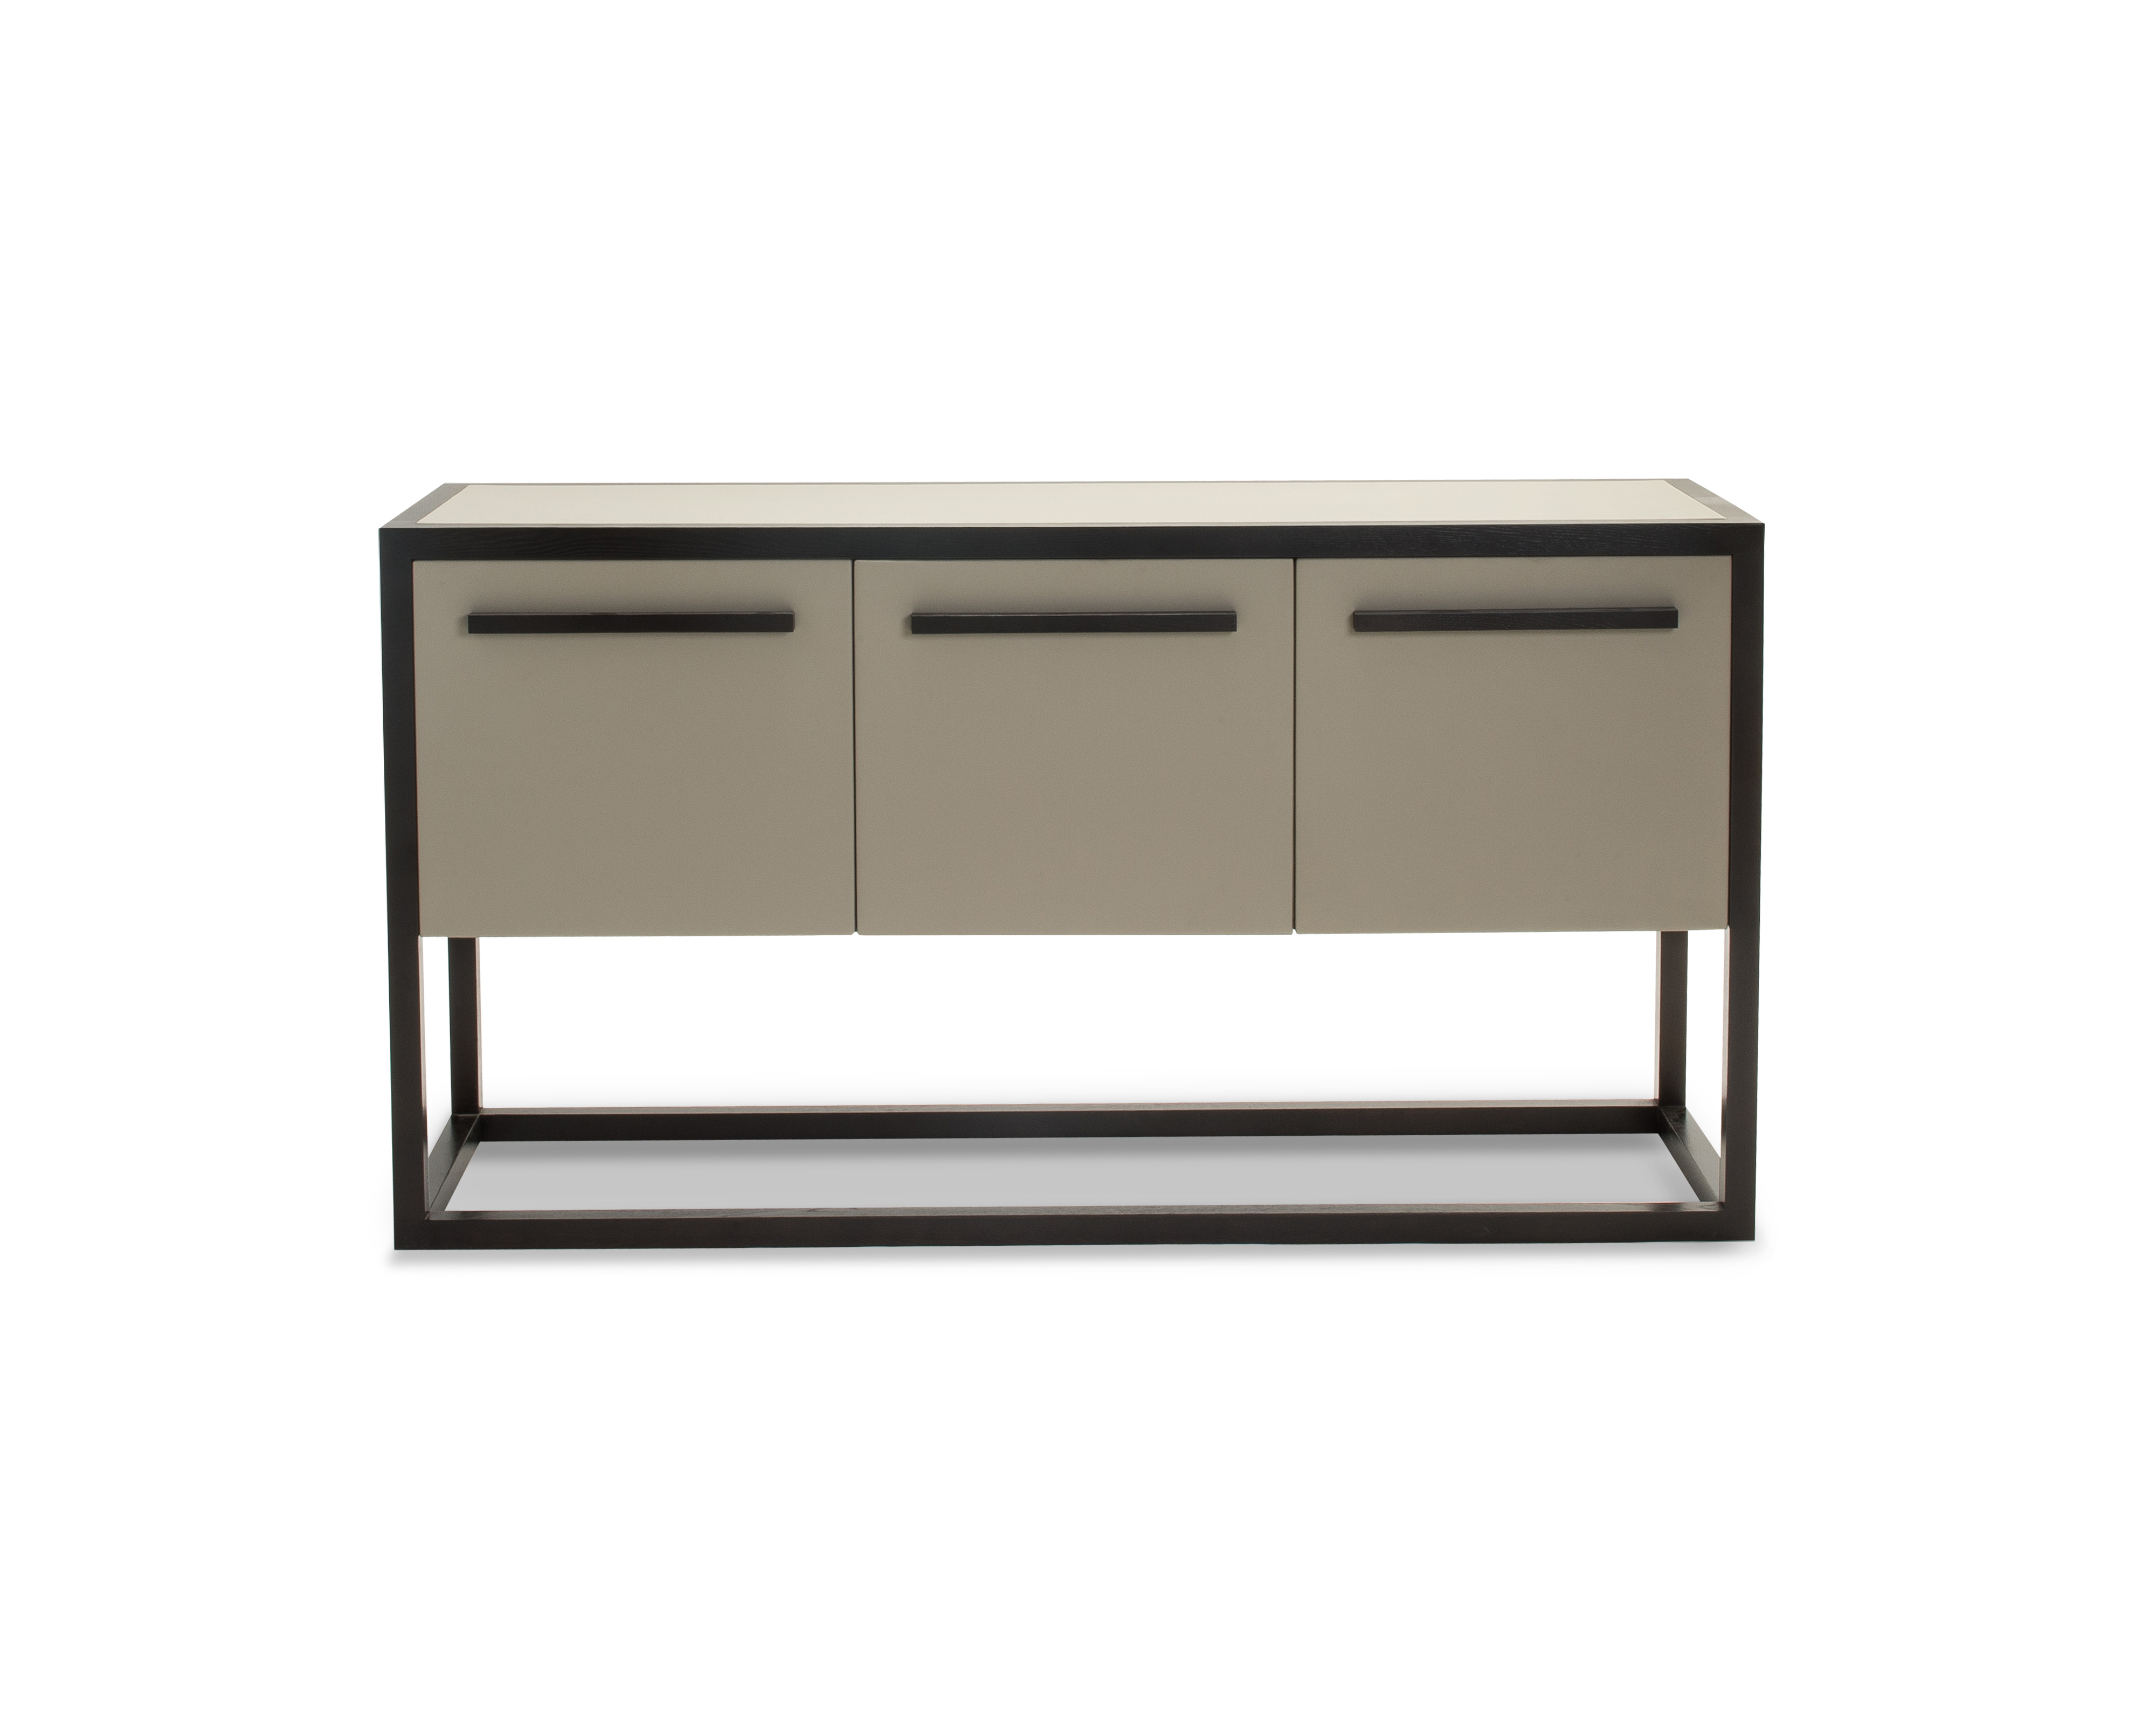 Roux sideboard liang eimil for Sideboard taupe